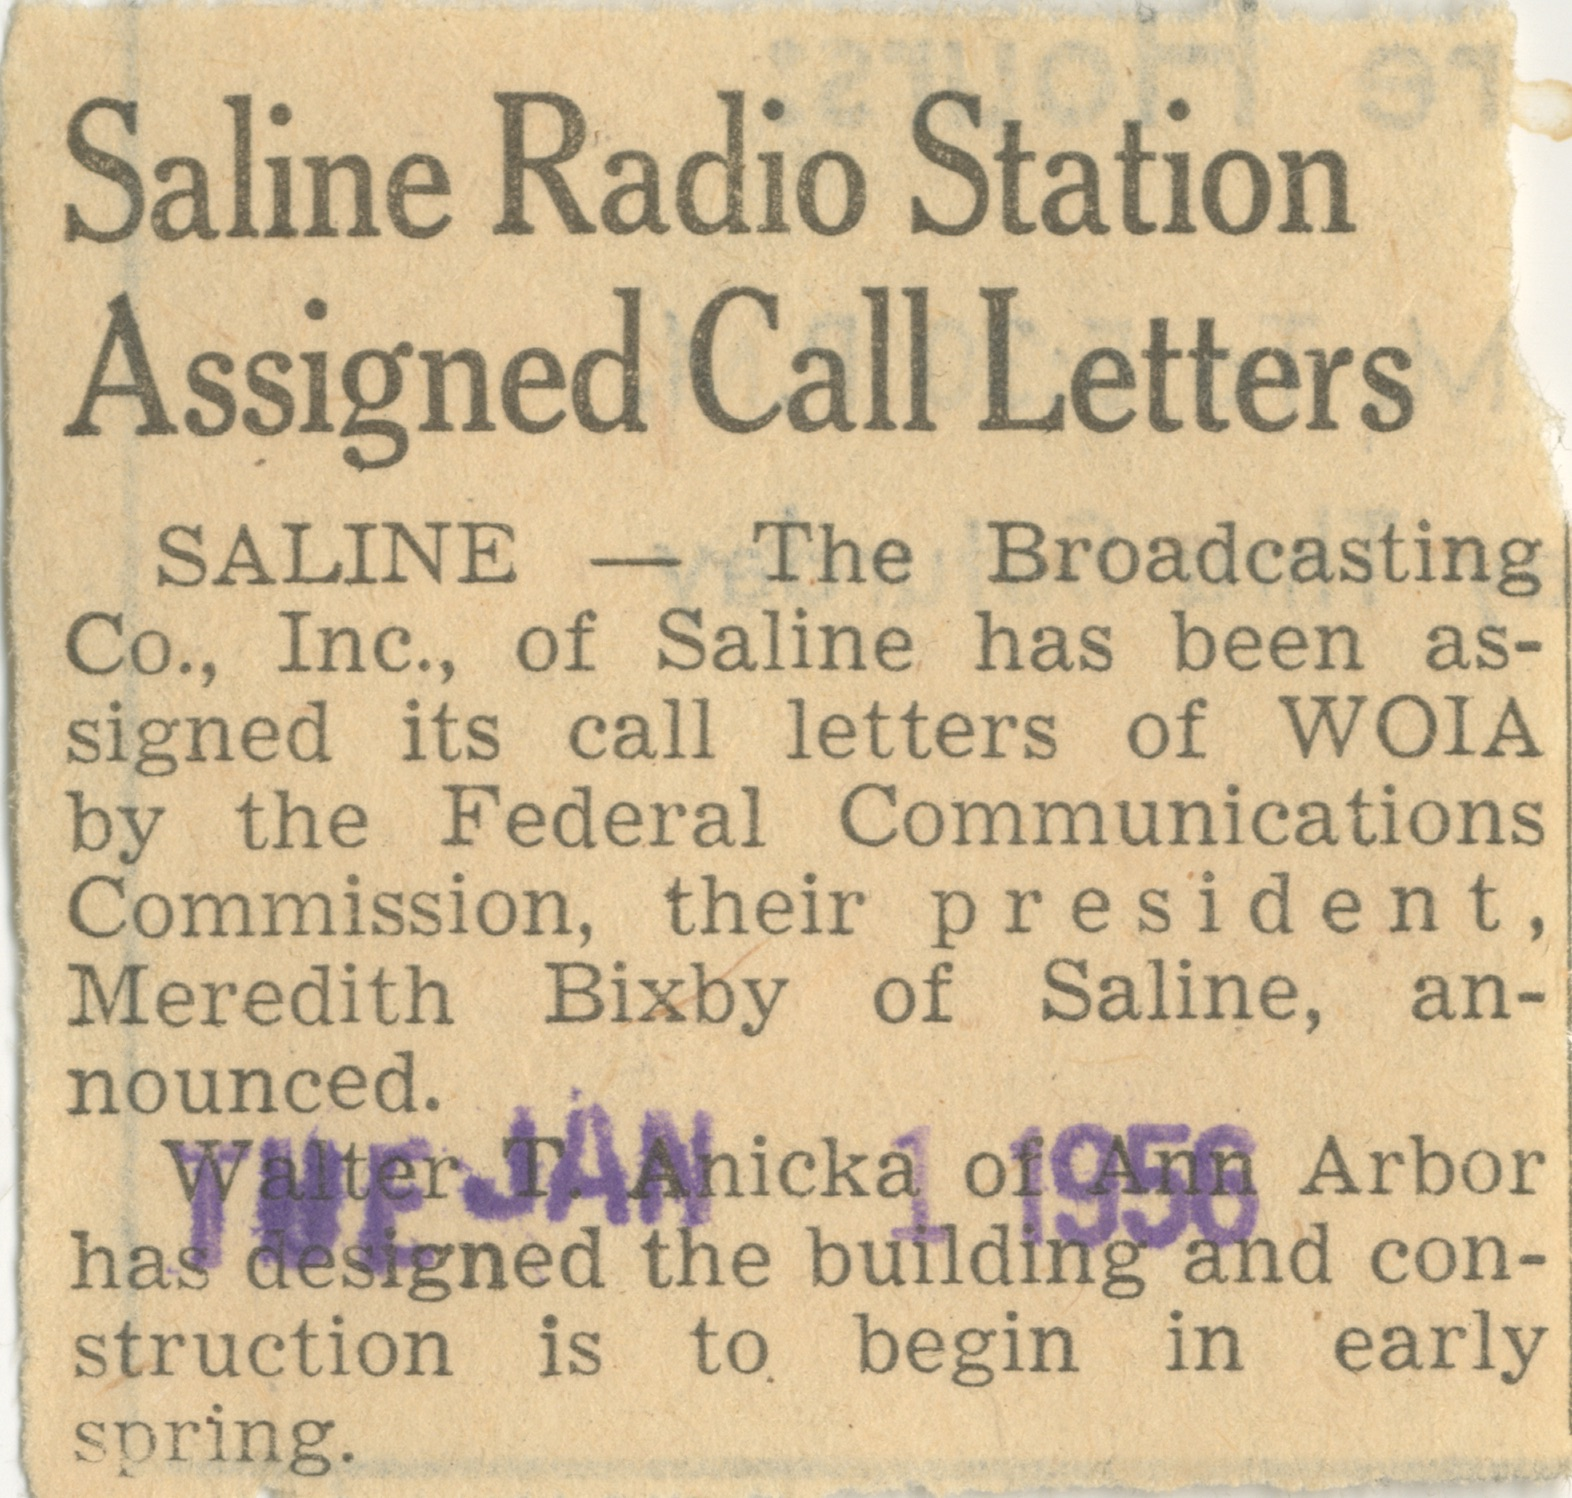 Saline Radio Station Assigned Call Letters image